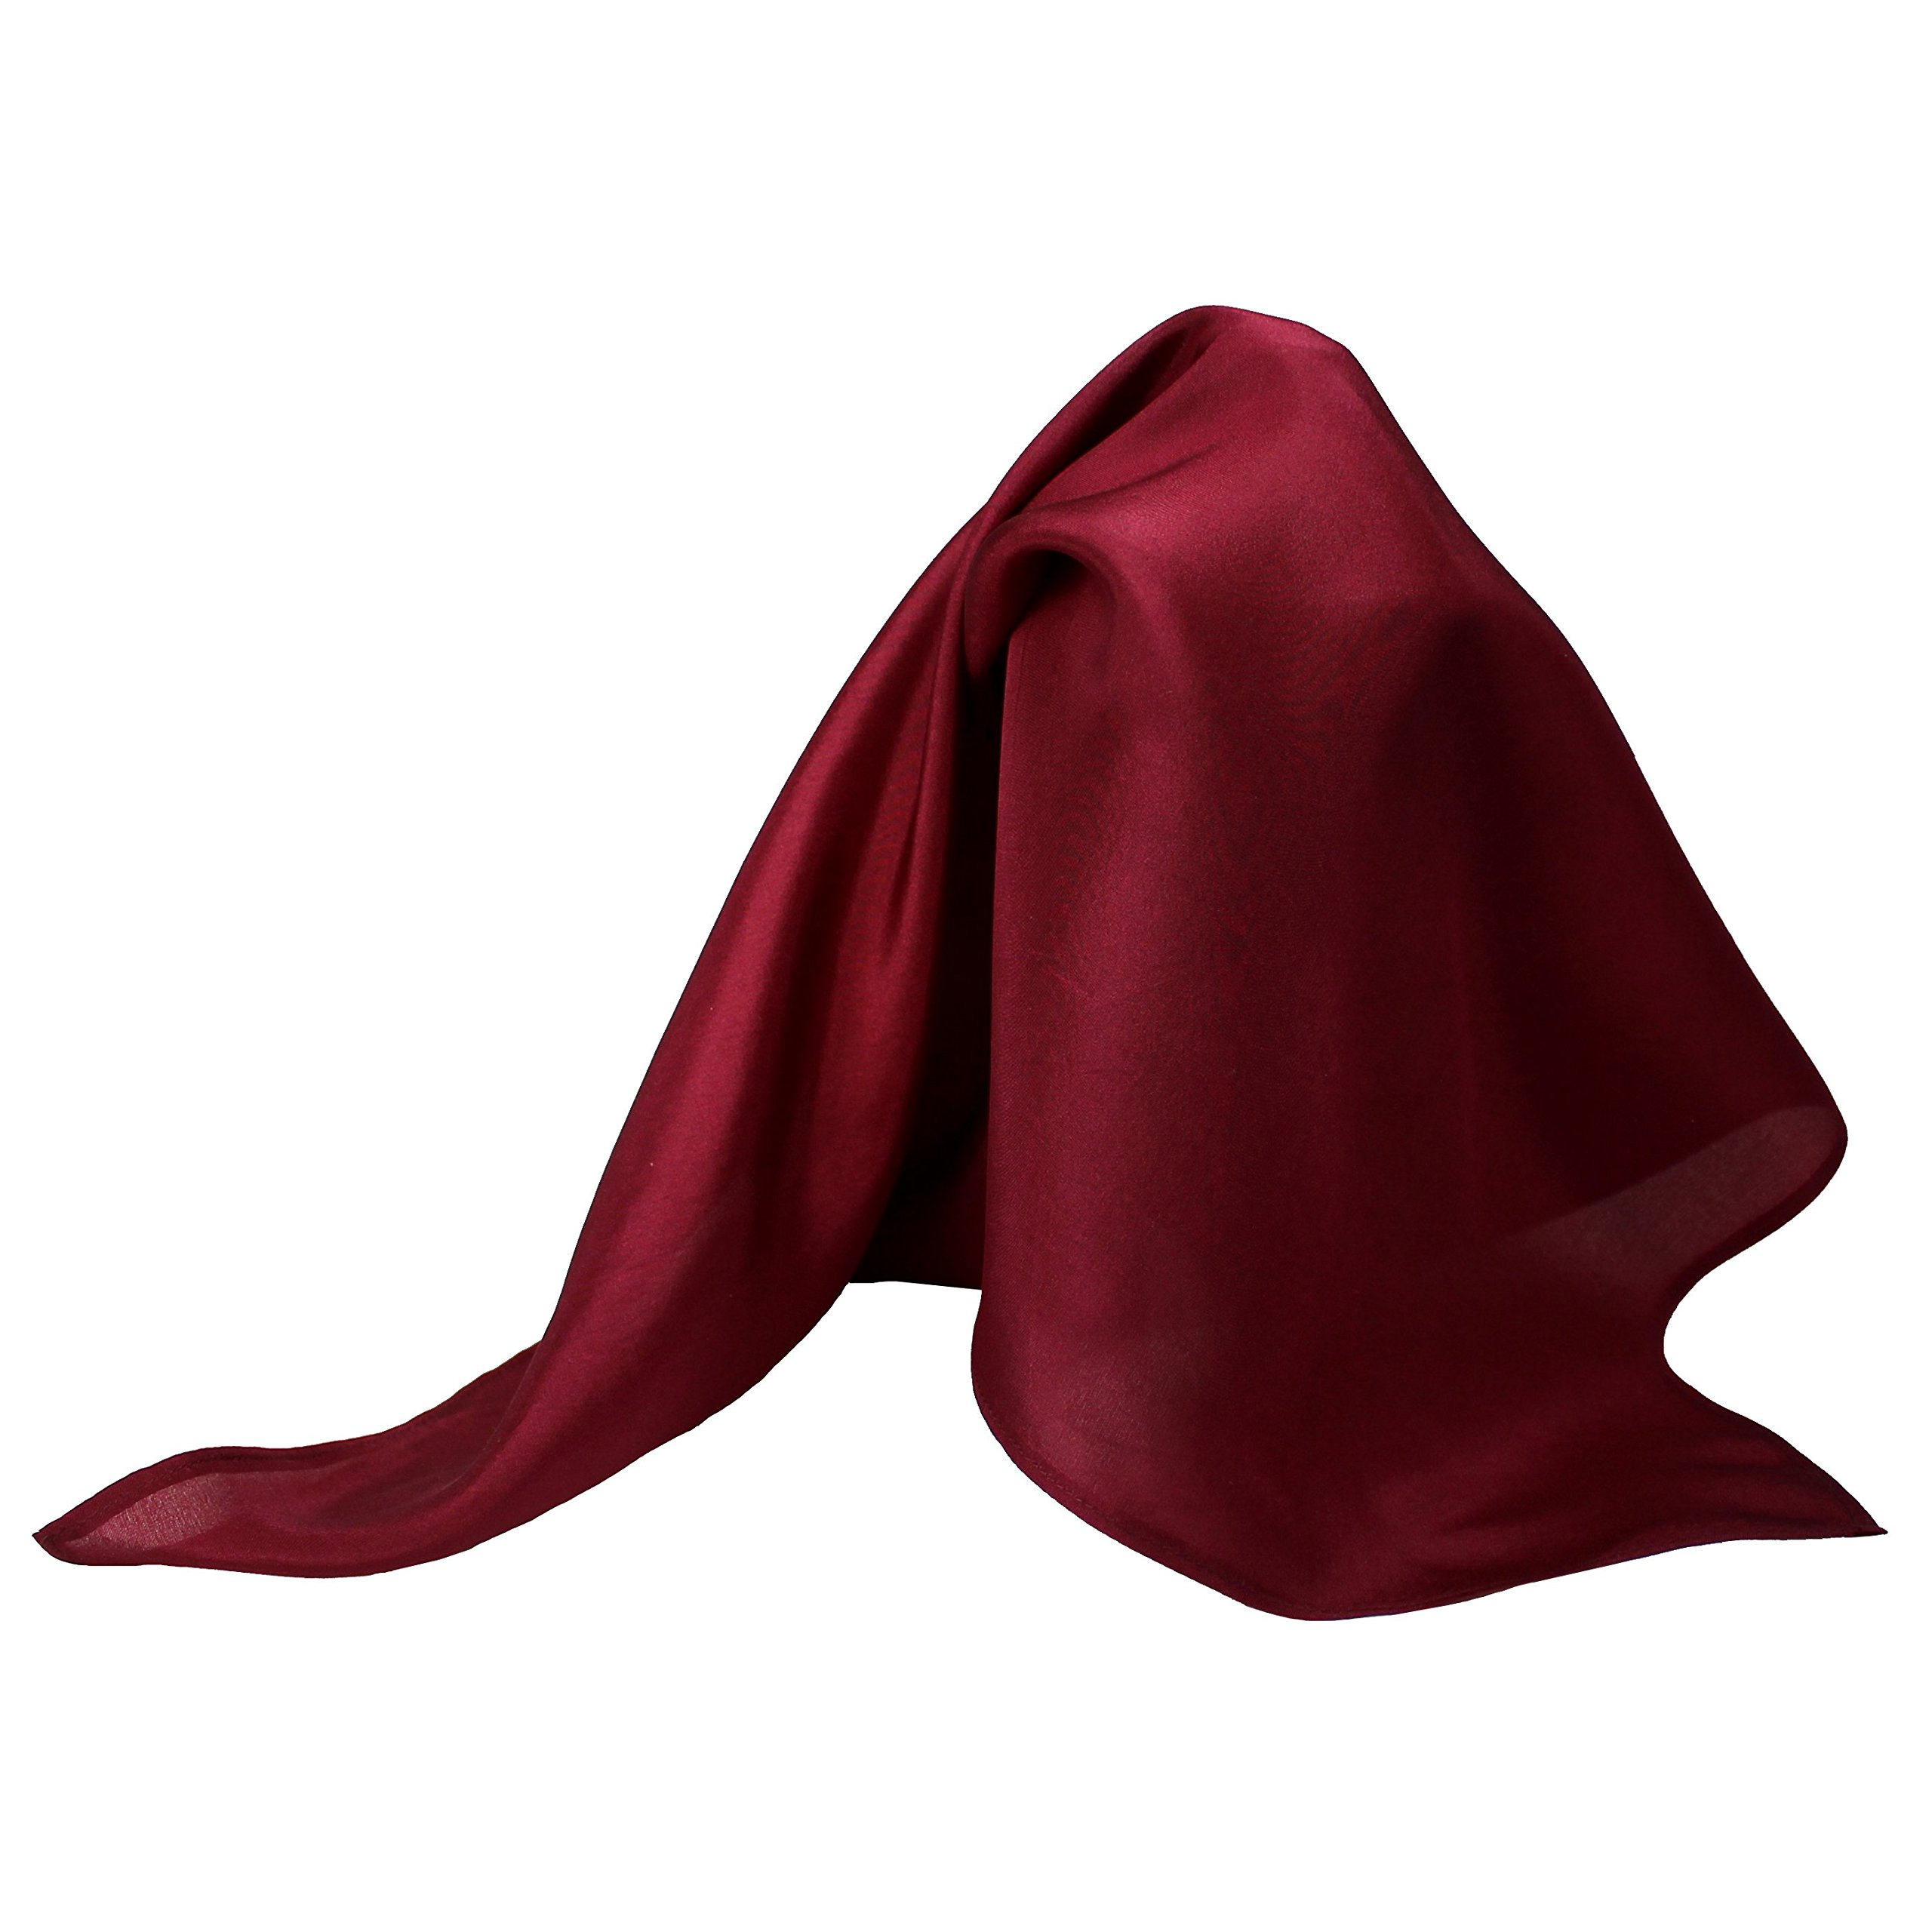 Classic Burgundy Silk Handkerchief - Full-Sized 16''x16'' …